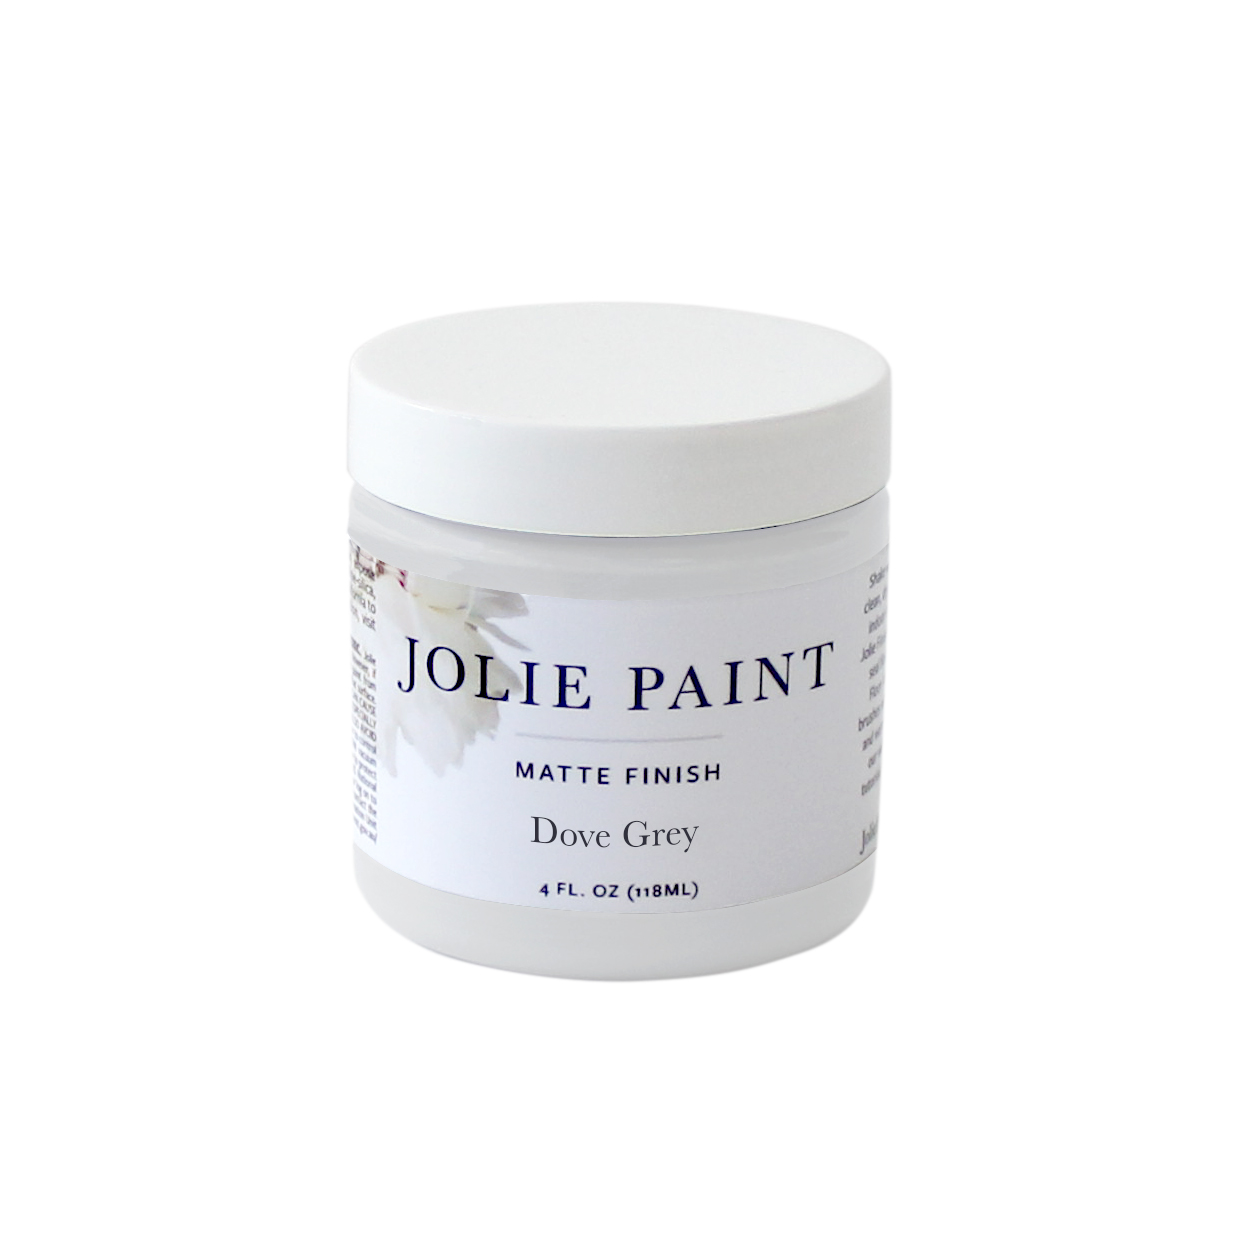 Dove Grey - Jolie Paint (s)